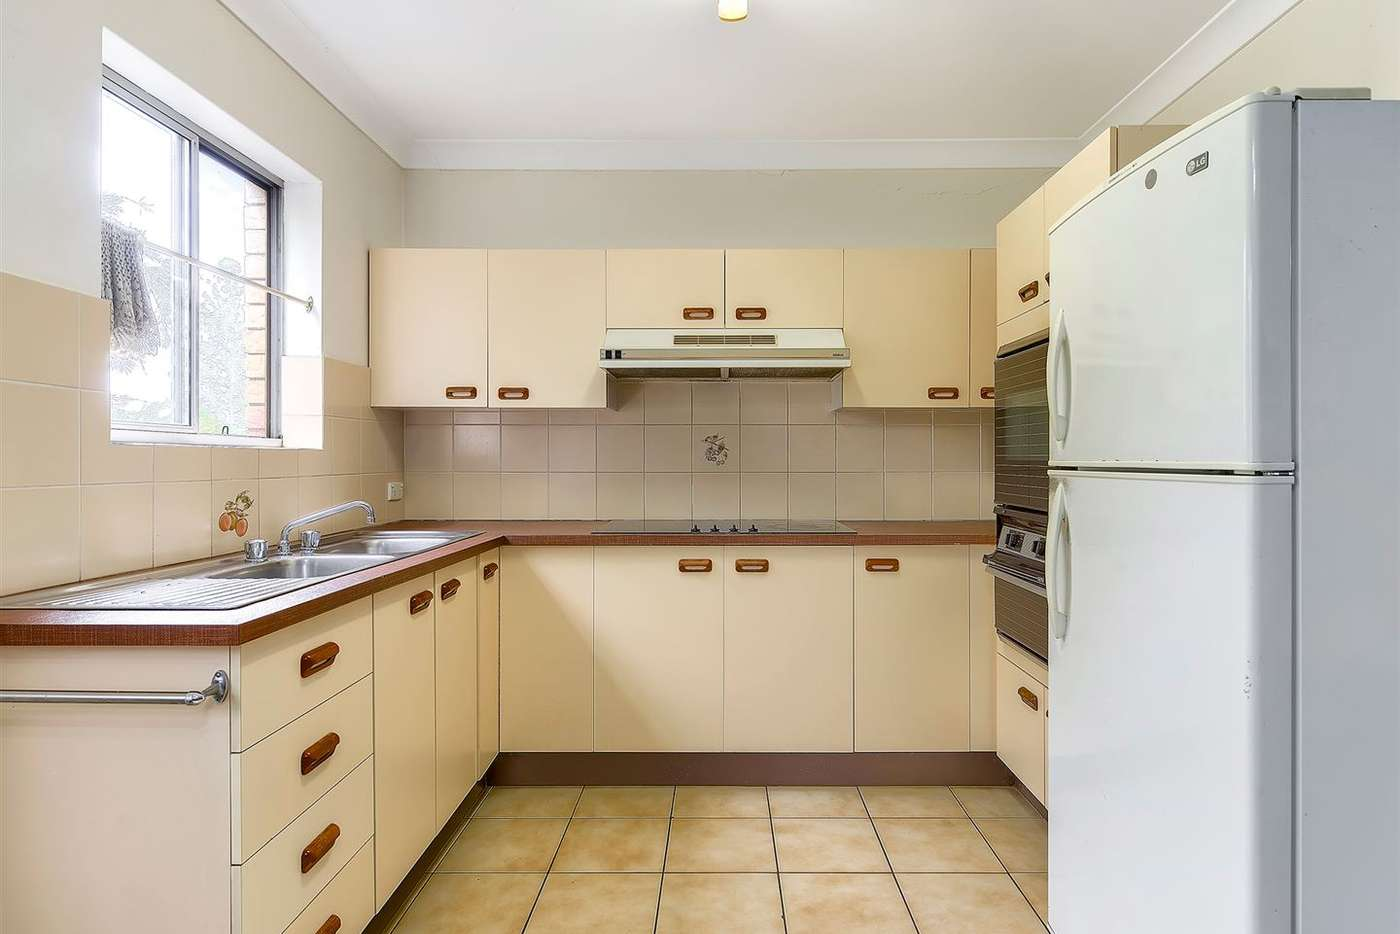 Sixth view of Homely unit listing, 3/7 Beaconsfield Terrace, Gordon Park QLD 4031